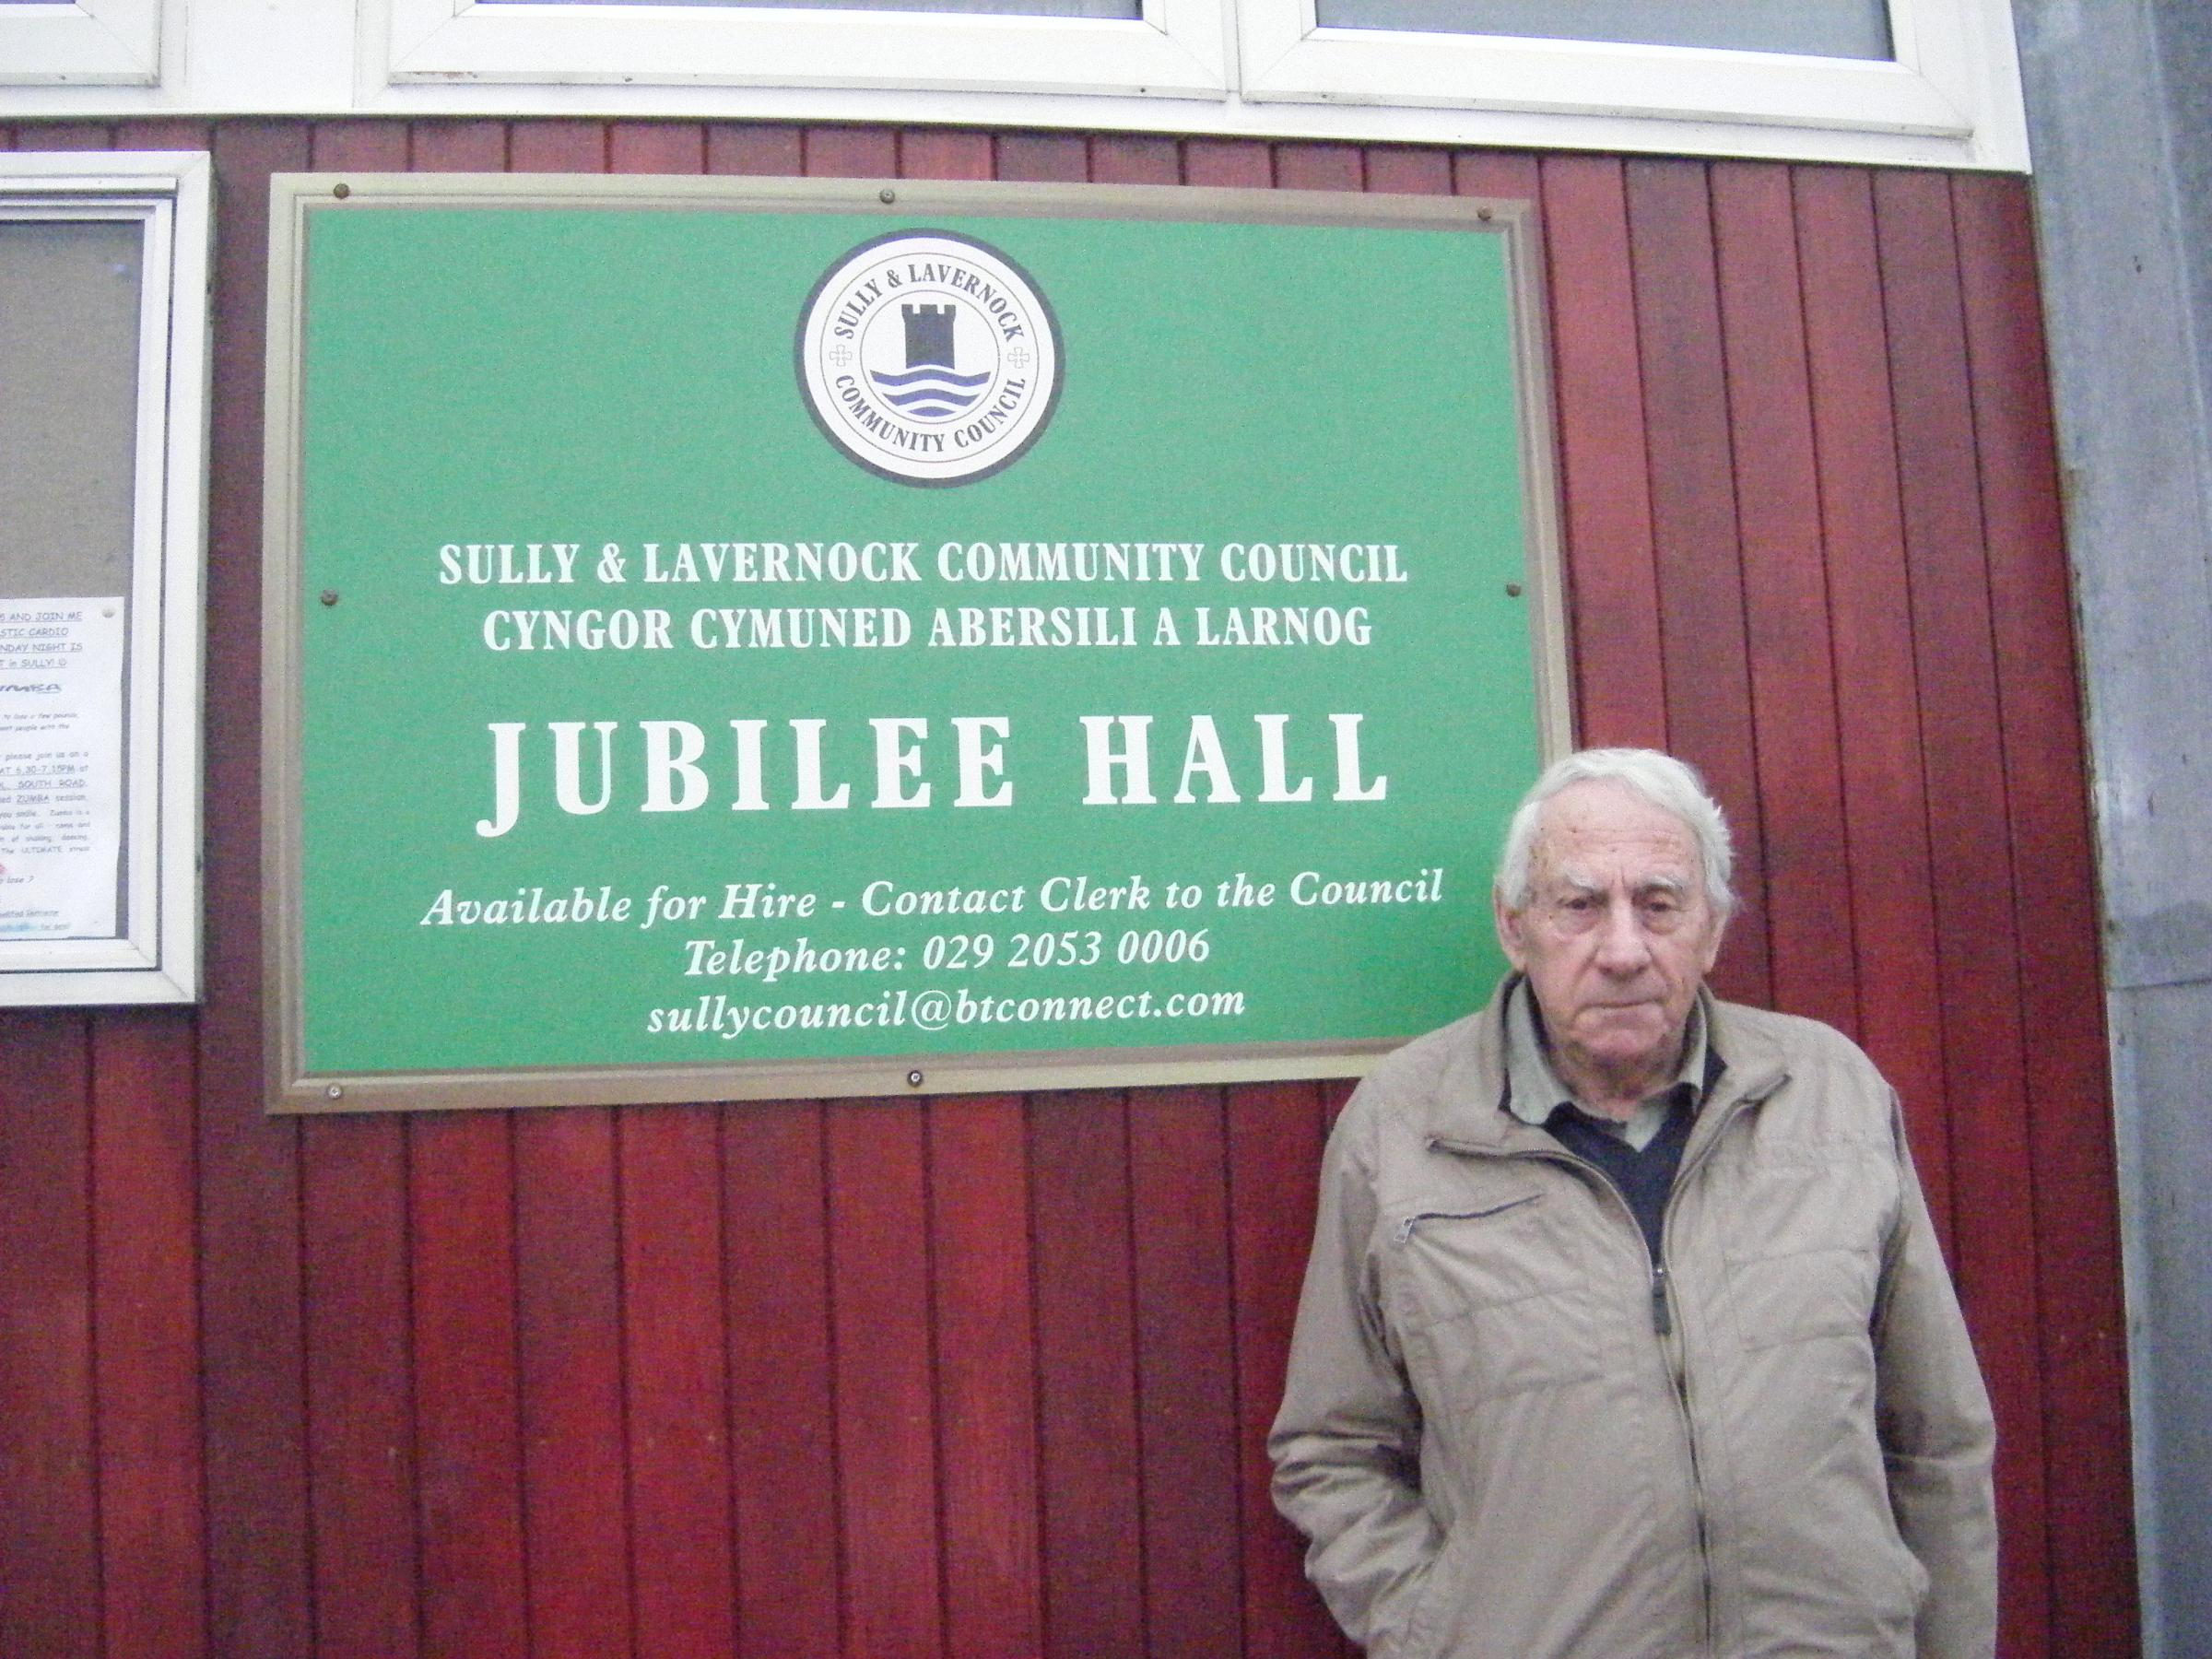 The Sully and Lavernock Residents' Association is run by Cllr Lino Scaglioni